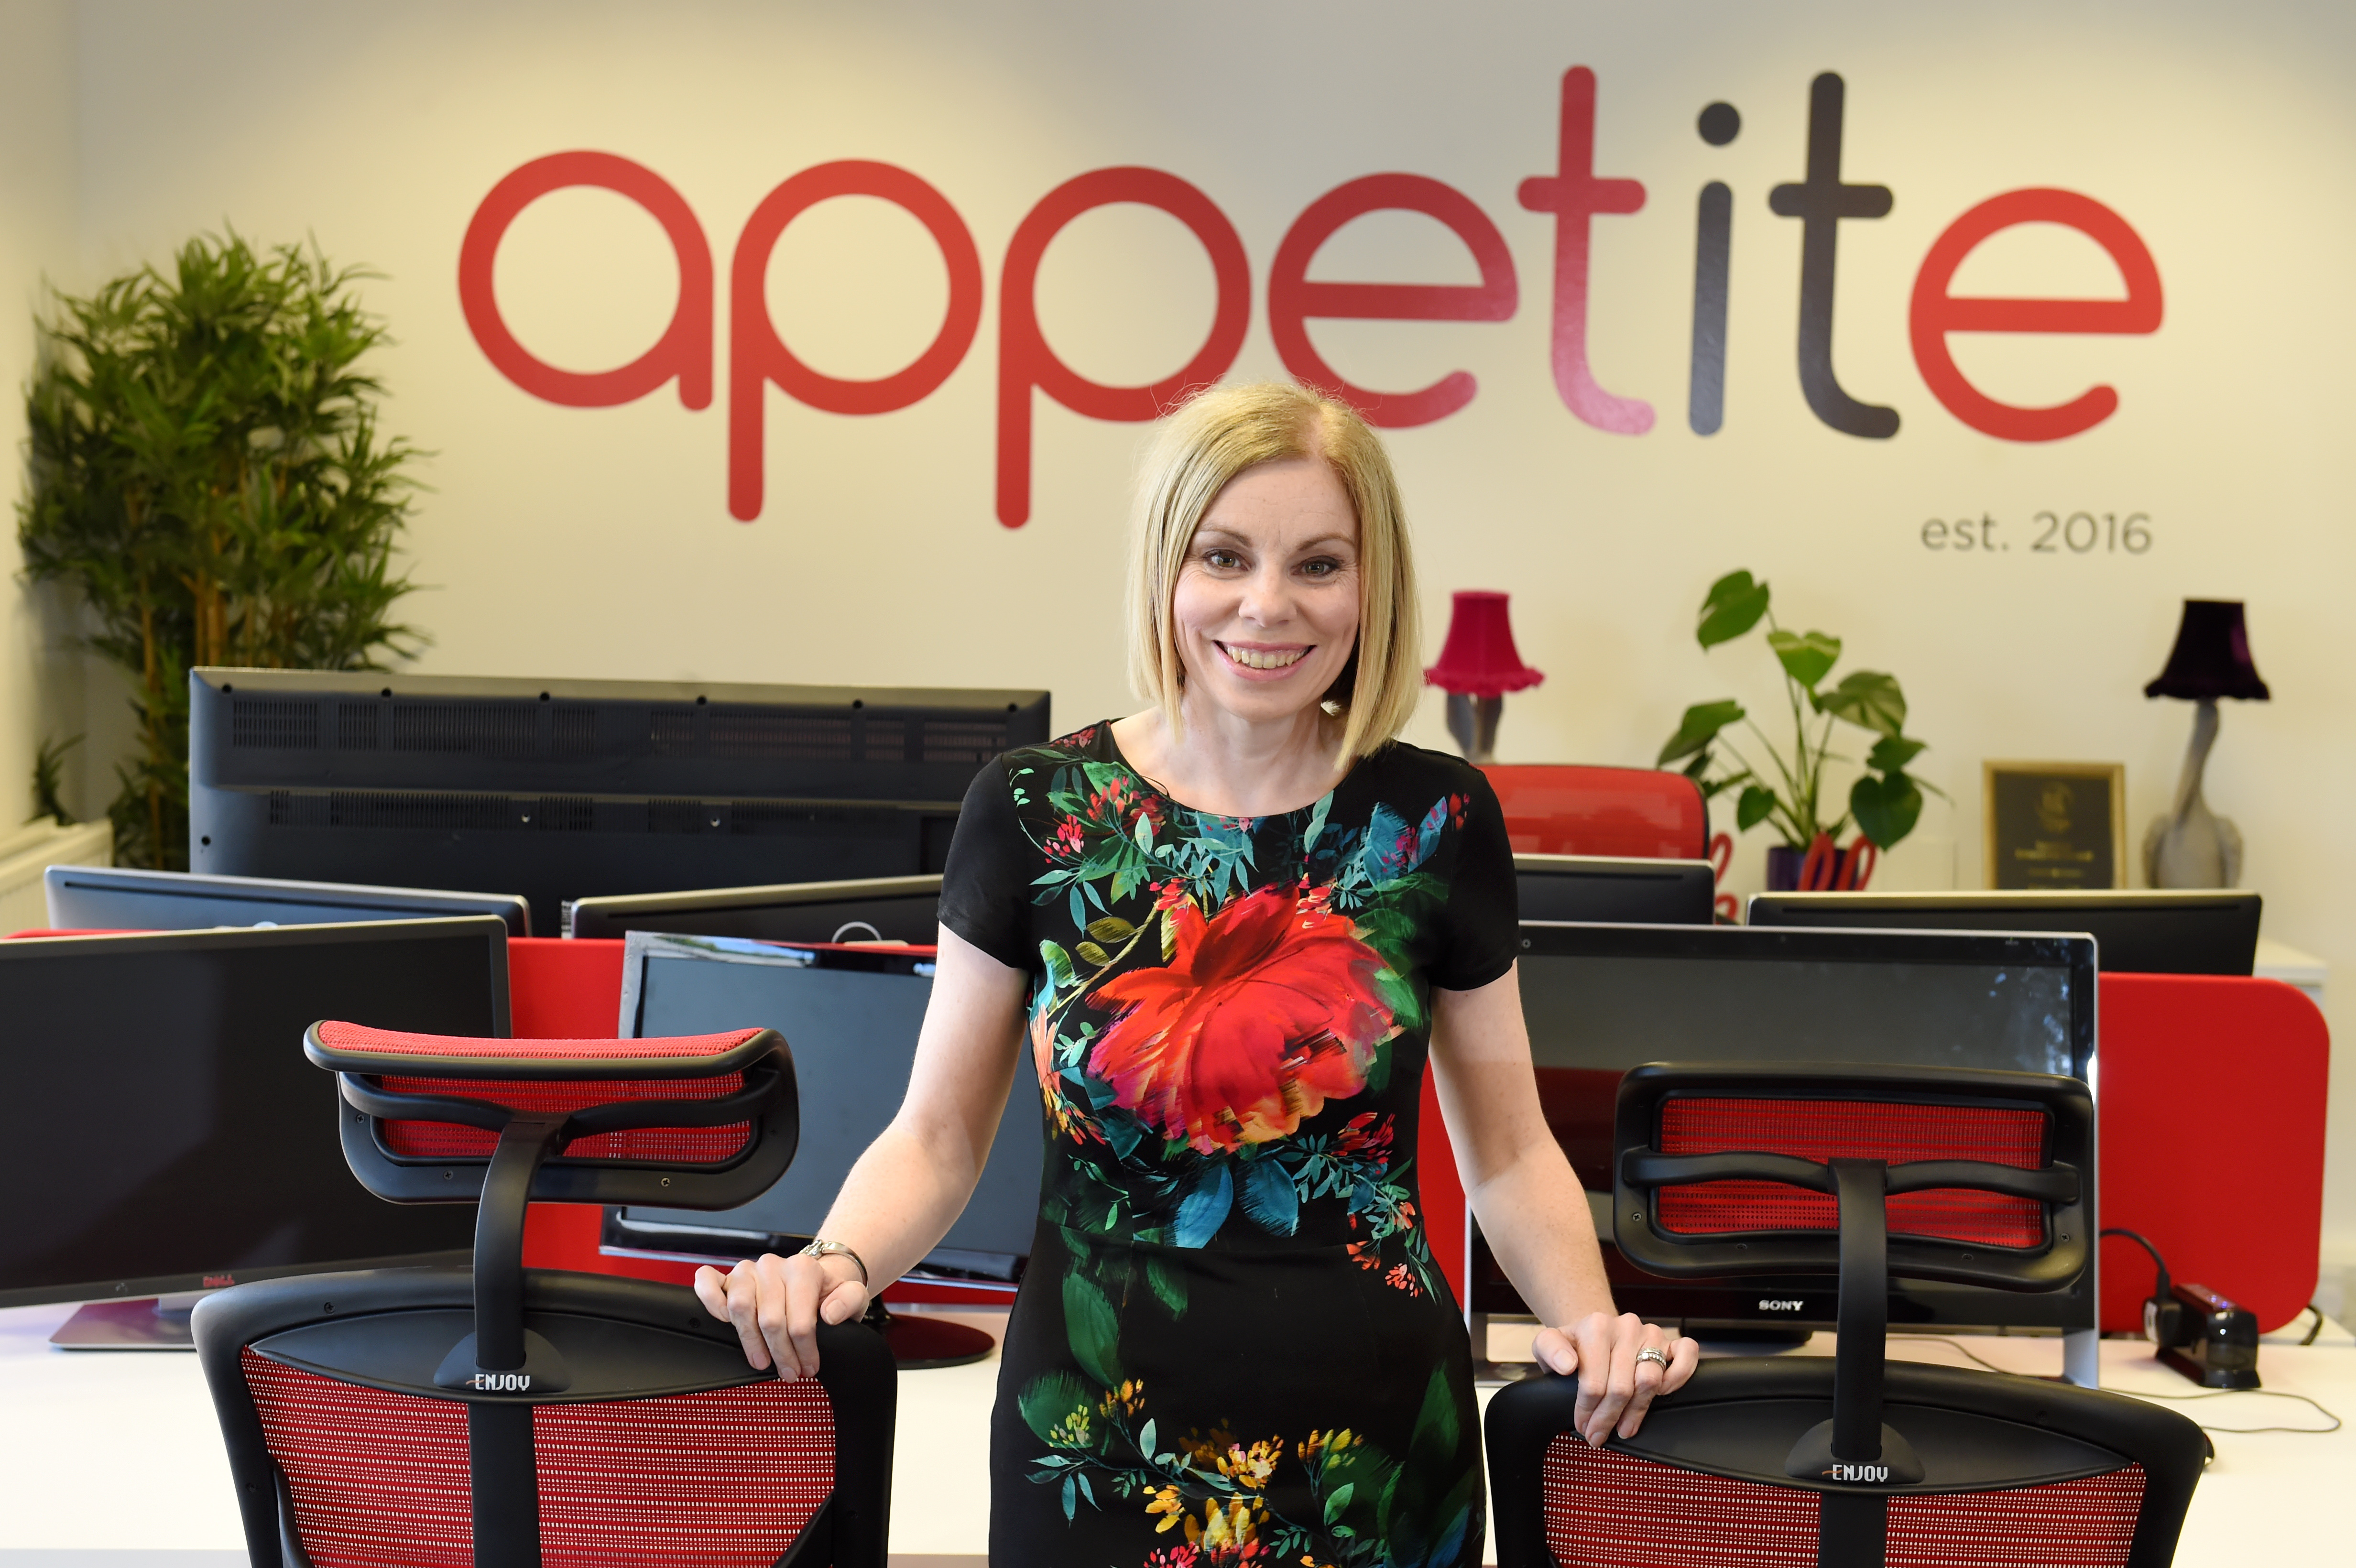 Appetite, Appetite for Business, SharePoint consultancy Aberdeen, SharePoint Consultancy Endinburgh, SharePoint Consultancy, Dundee, SharePoint Consultancy Glasgow, SharePoint consultancy Invernesss, Office 365 Aberdeen, Office 365 Inverness, Office 365 Edinburgh, Office 365 Glasgow, Office 365 Dundee IT Training, SharePoint training, Office 365 training, 365 onboarding, user adoption, sharepoint best practices, Sharepoint development Aberdeen, SharePoint development Edinburgh, SharePoint development Glasgow, SharePoint development Inverness, SharePoint development Houston, SharePoint consultancy Houston